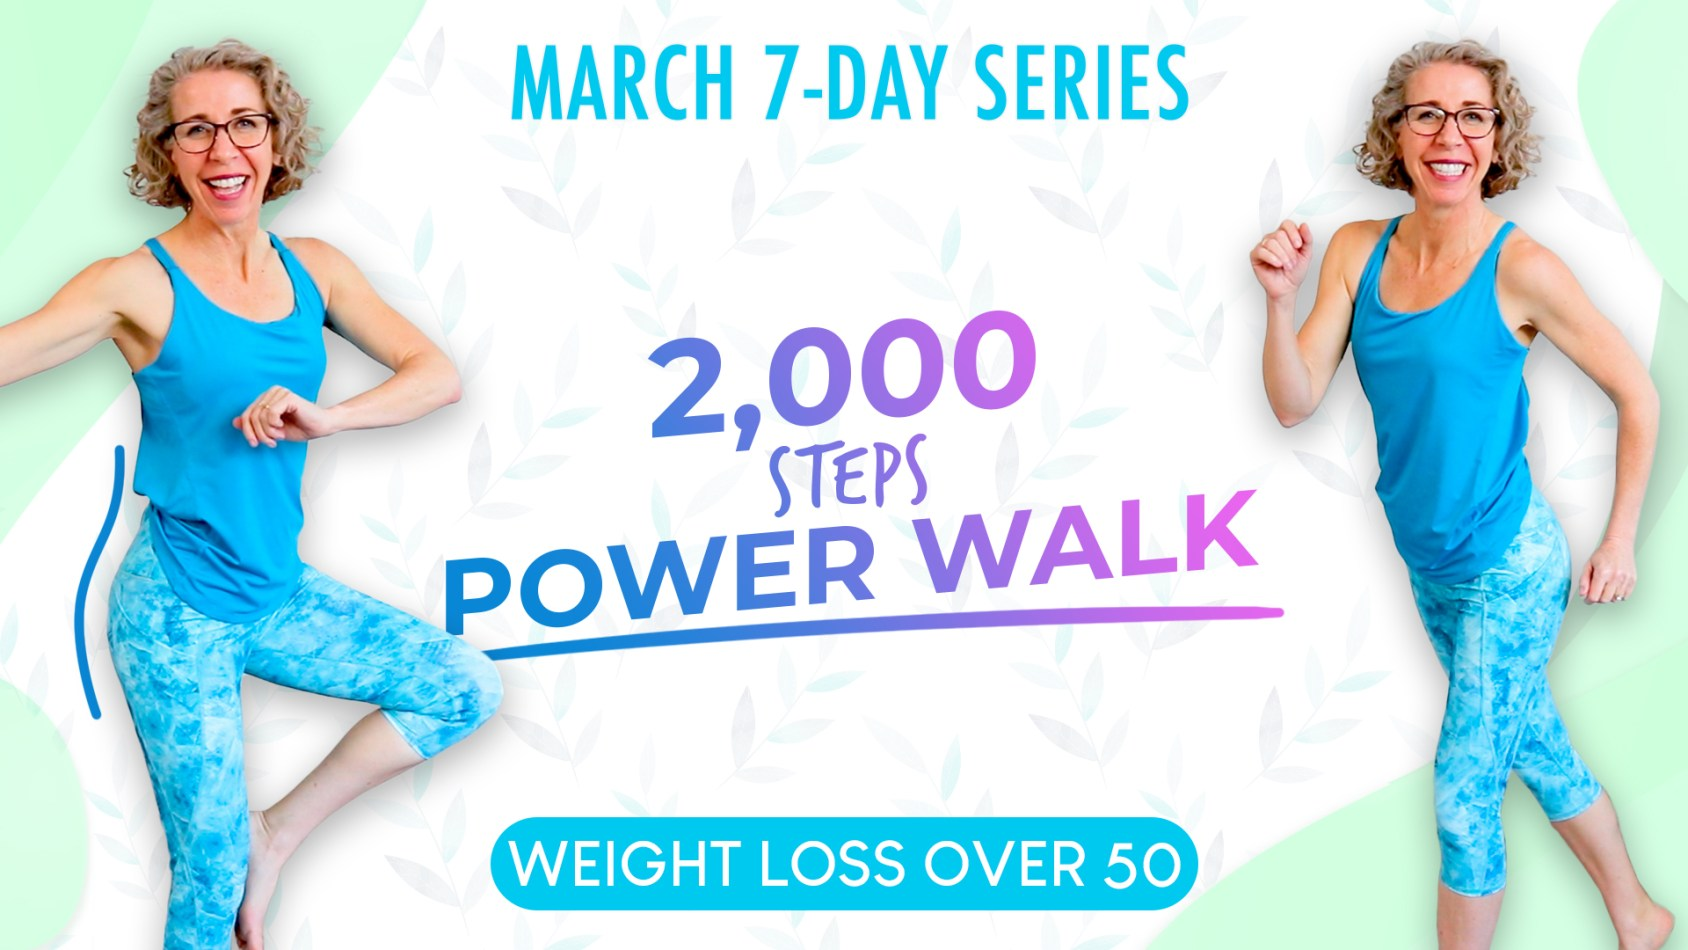 Cardio POWER WALK with BALANCE Practice WEIGHT LOSS Workout ???? Pahla B Fitness